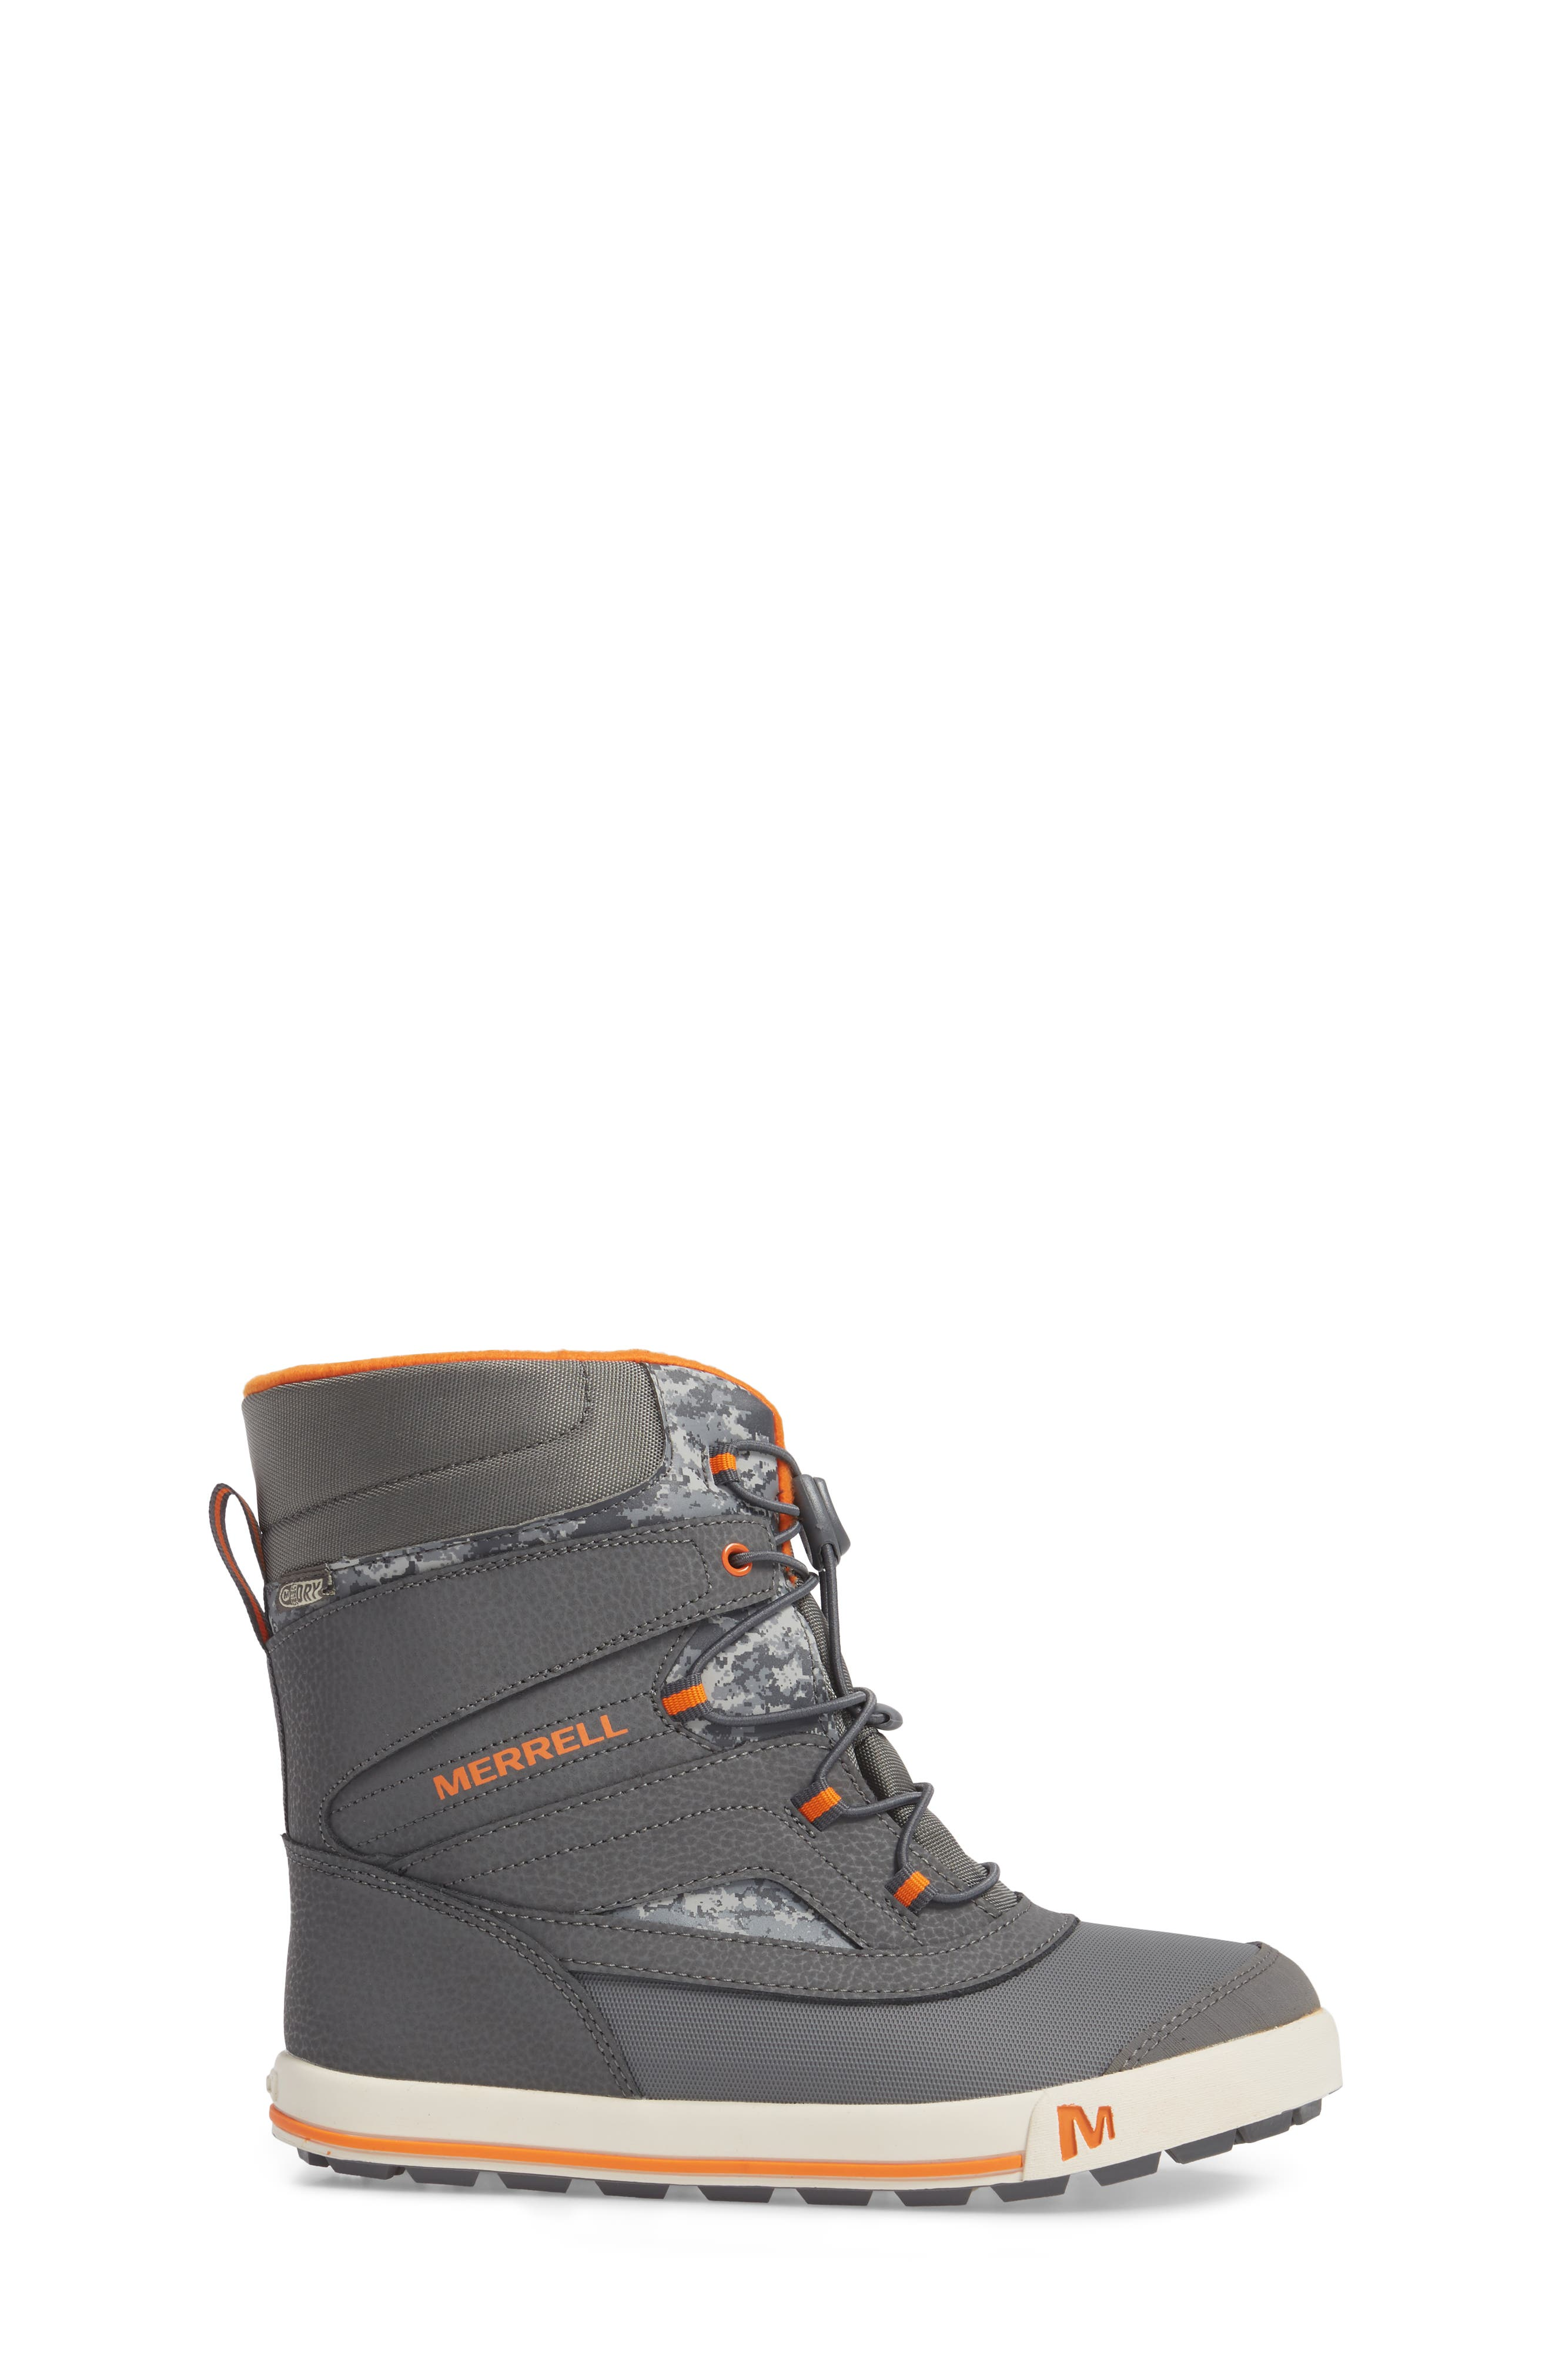 Snow Bank 2 Insulated Waterproof Boot,                             Alternate thumbnail 3, color,                             Grey/ Orange